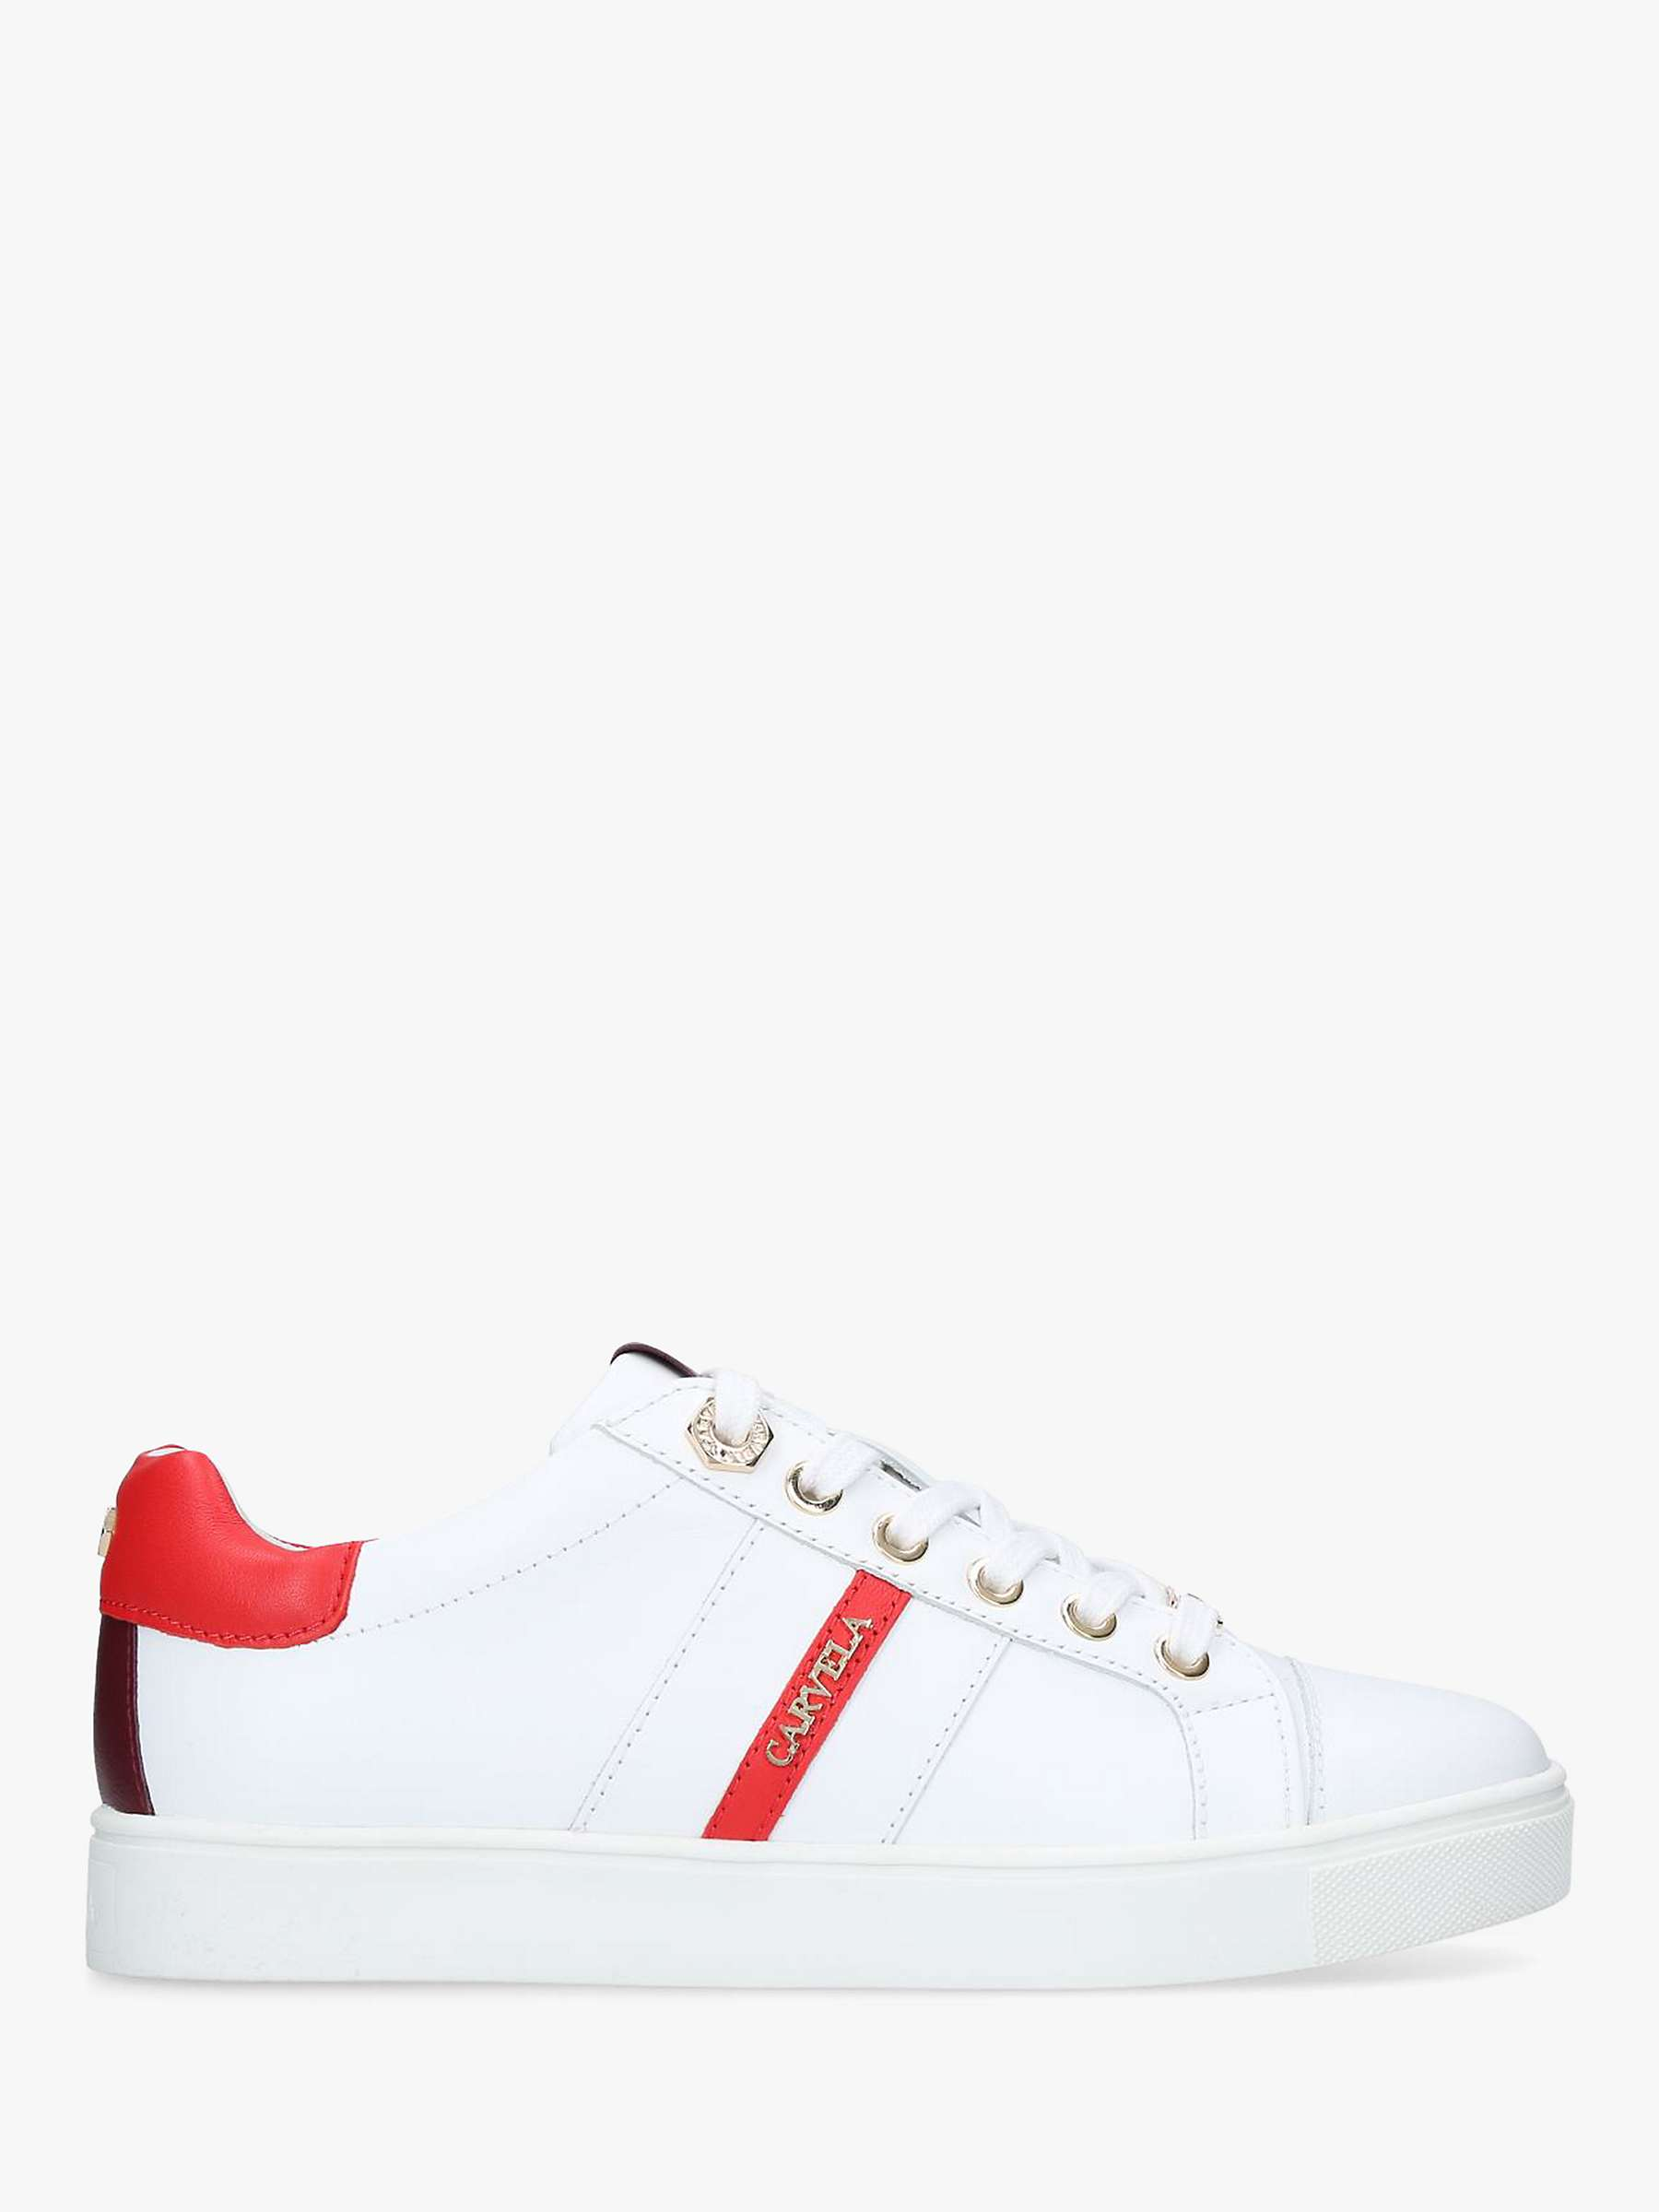 limited quantity pre order enjoy clearance price Carvela Lisa Low Top Trainers, White/Red Leather at John ...